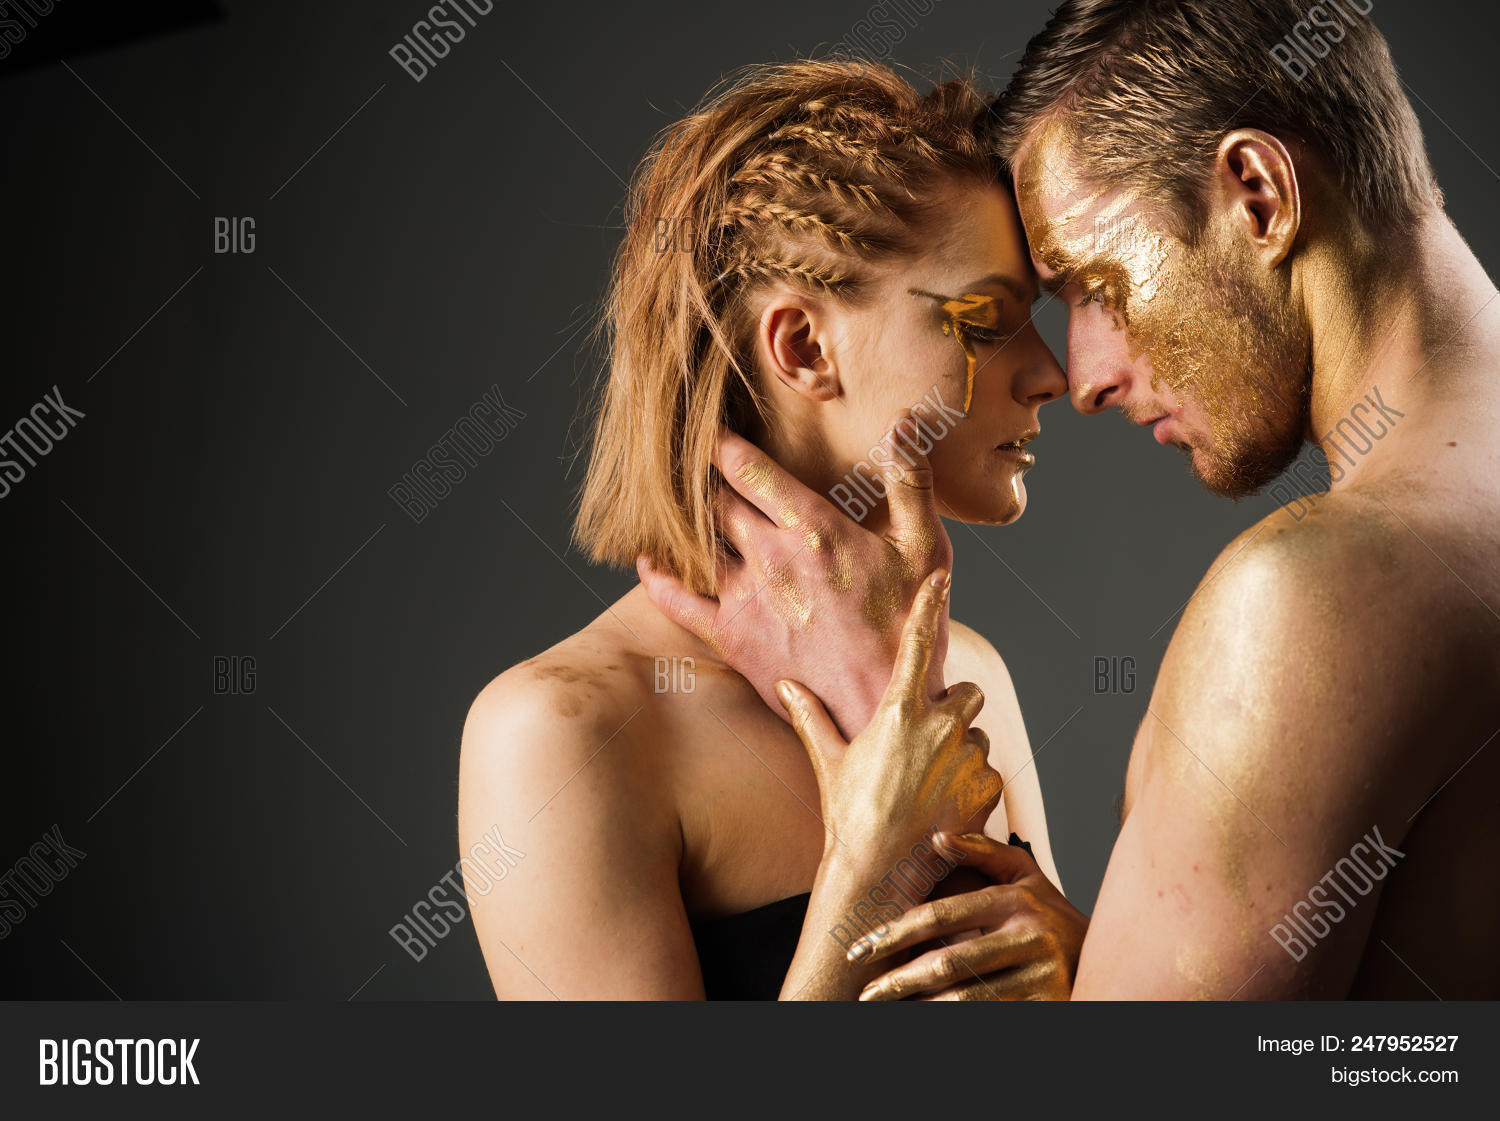 Sexy Couple Golden Image Photo Free Trial Bigstock